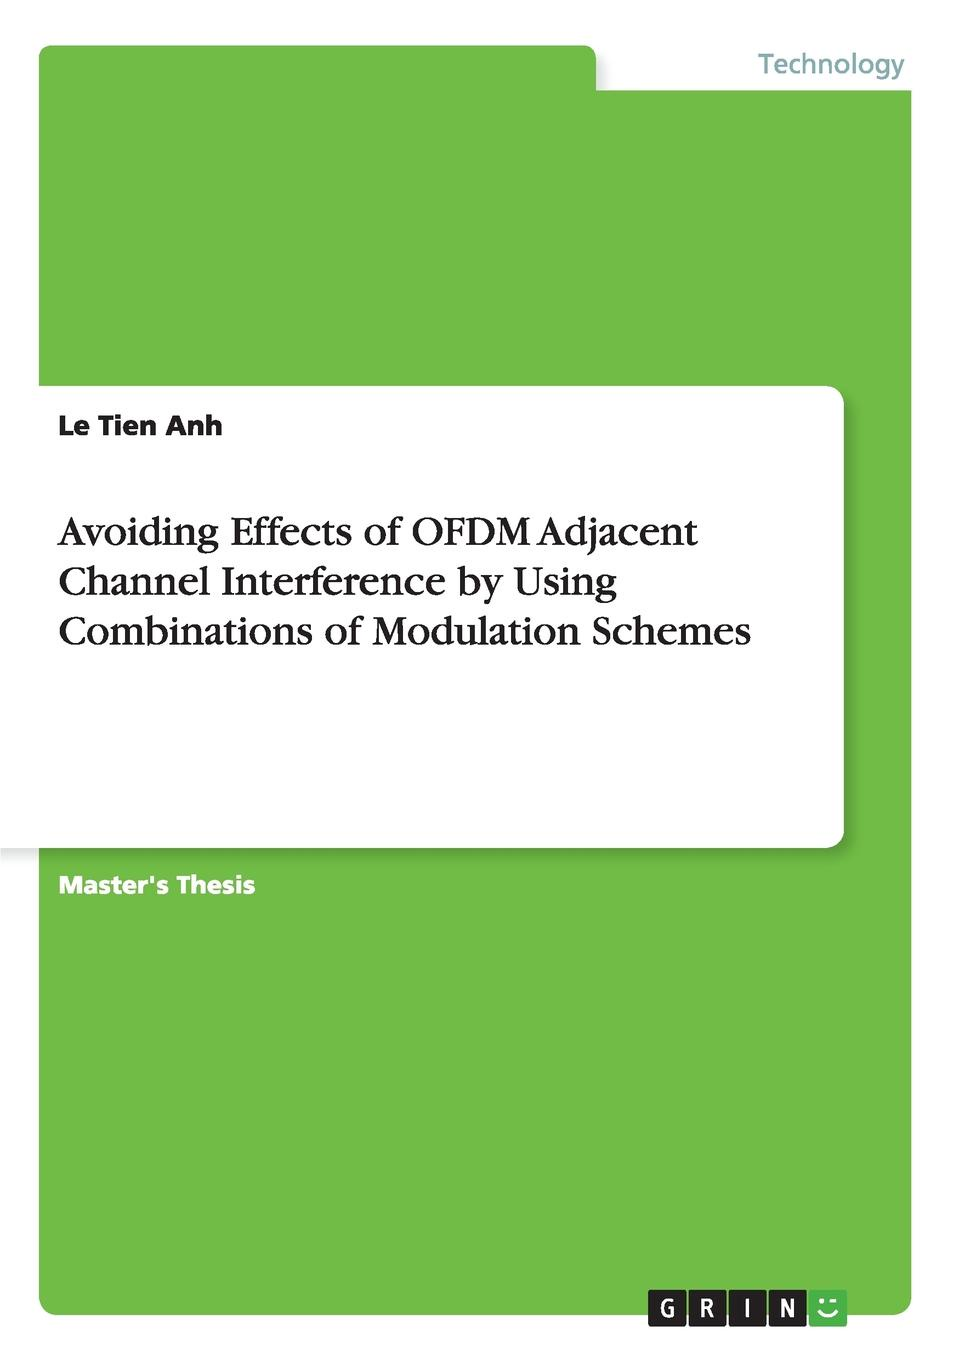 Avoiding Effects of OFDM Adjacent Channel Interference by Using Combinations of Modulation Schemes